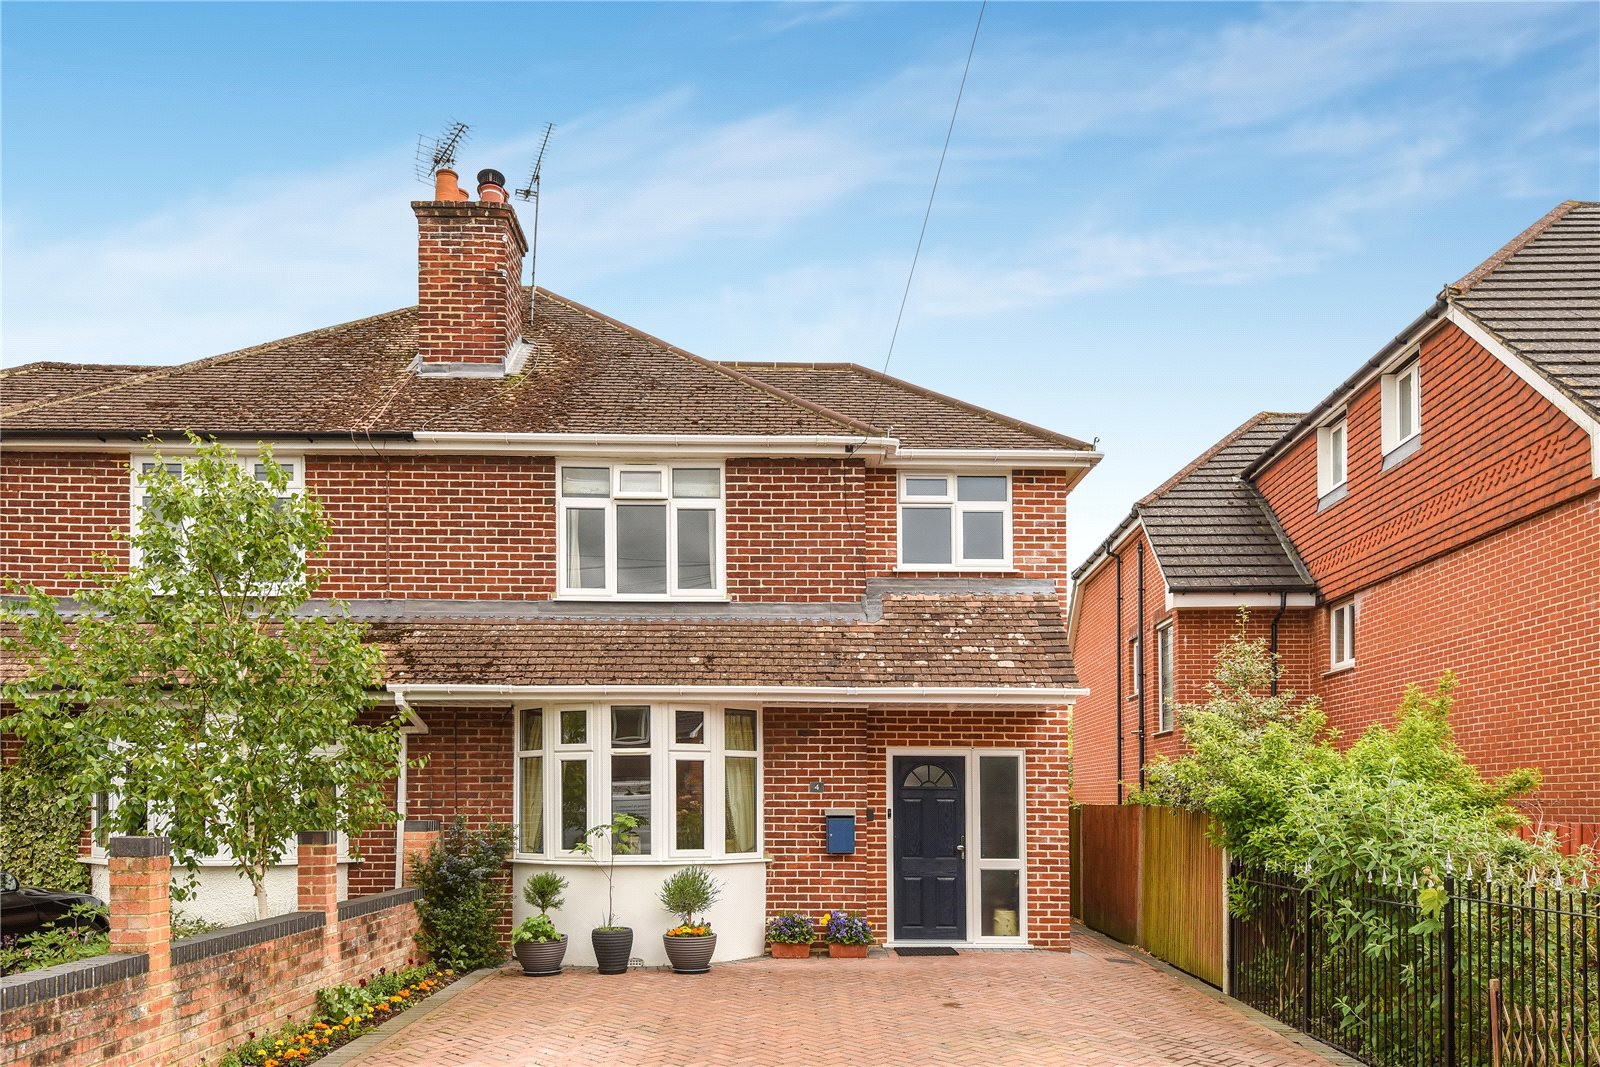 3 Bedrooms Semi Detached House for sale in Florence Road, College Town, Sandhurst, Berkshire, GU47